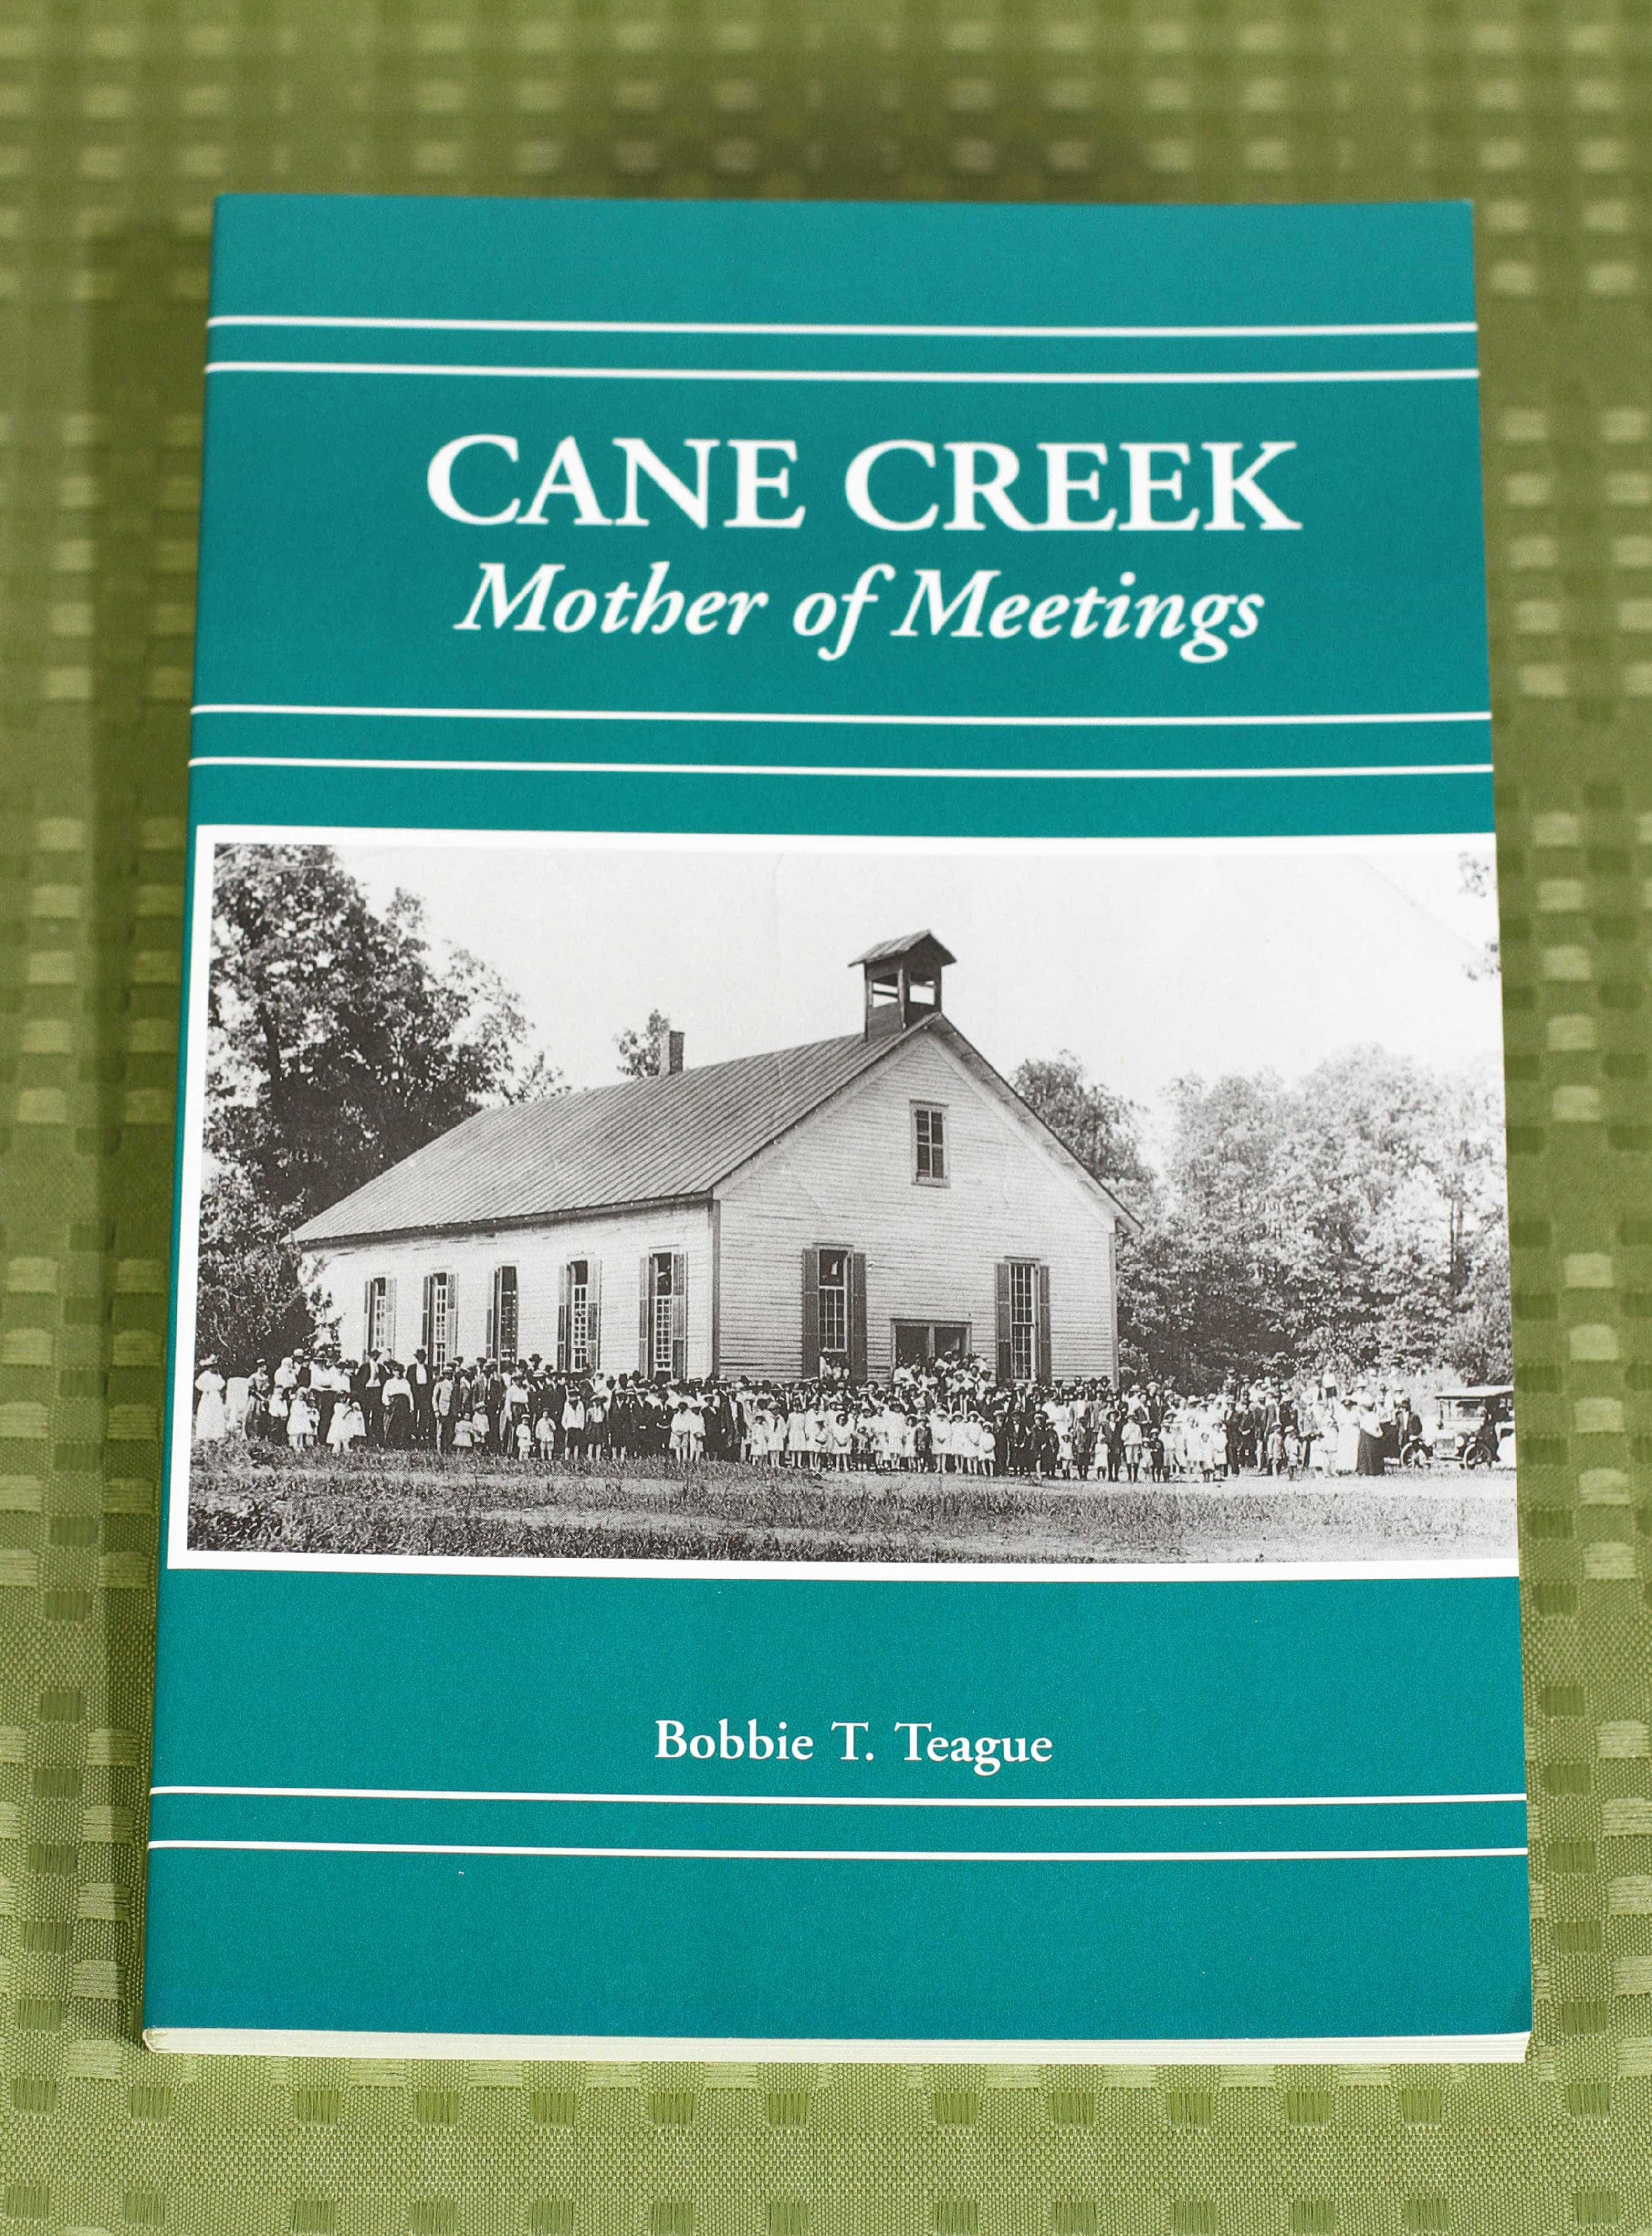 Cane Creek Mother of Meetings